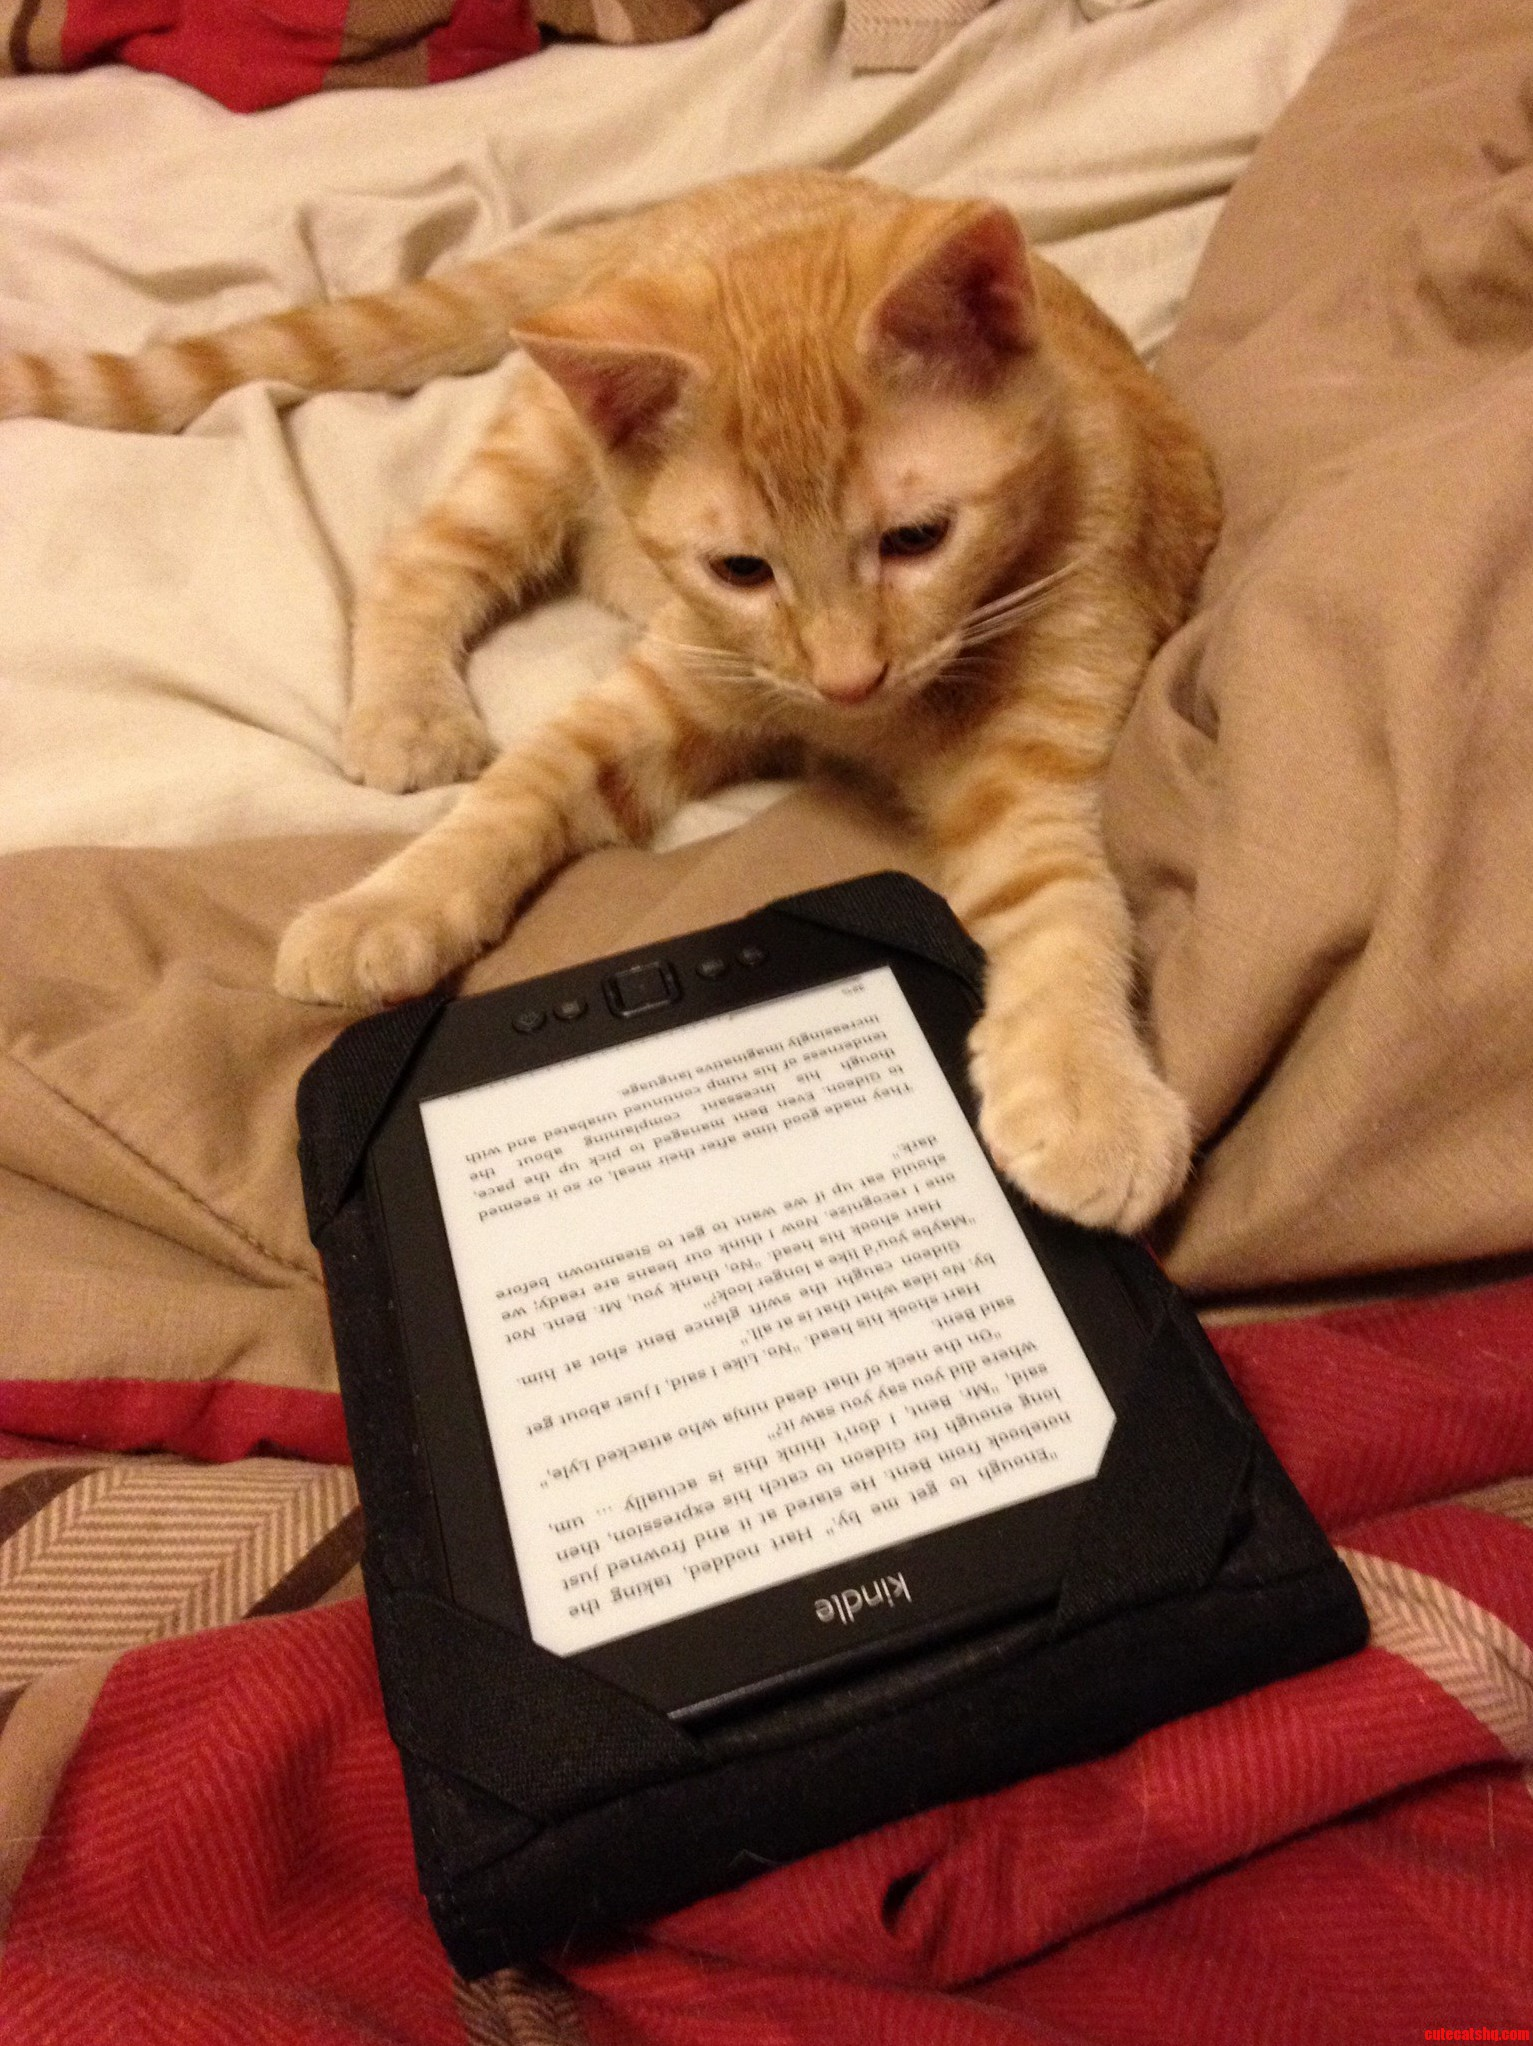 I Guess My Roommates Kitten Will Be Writing All My Book Reviews For Me From Here On Out.